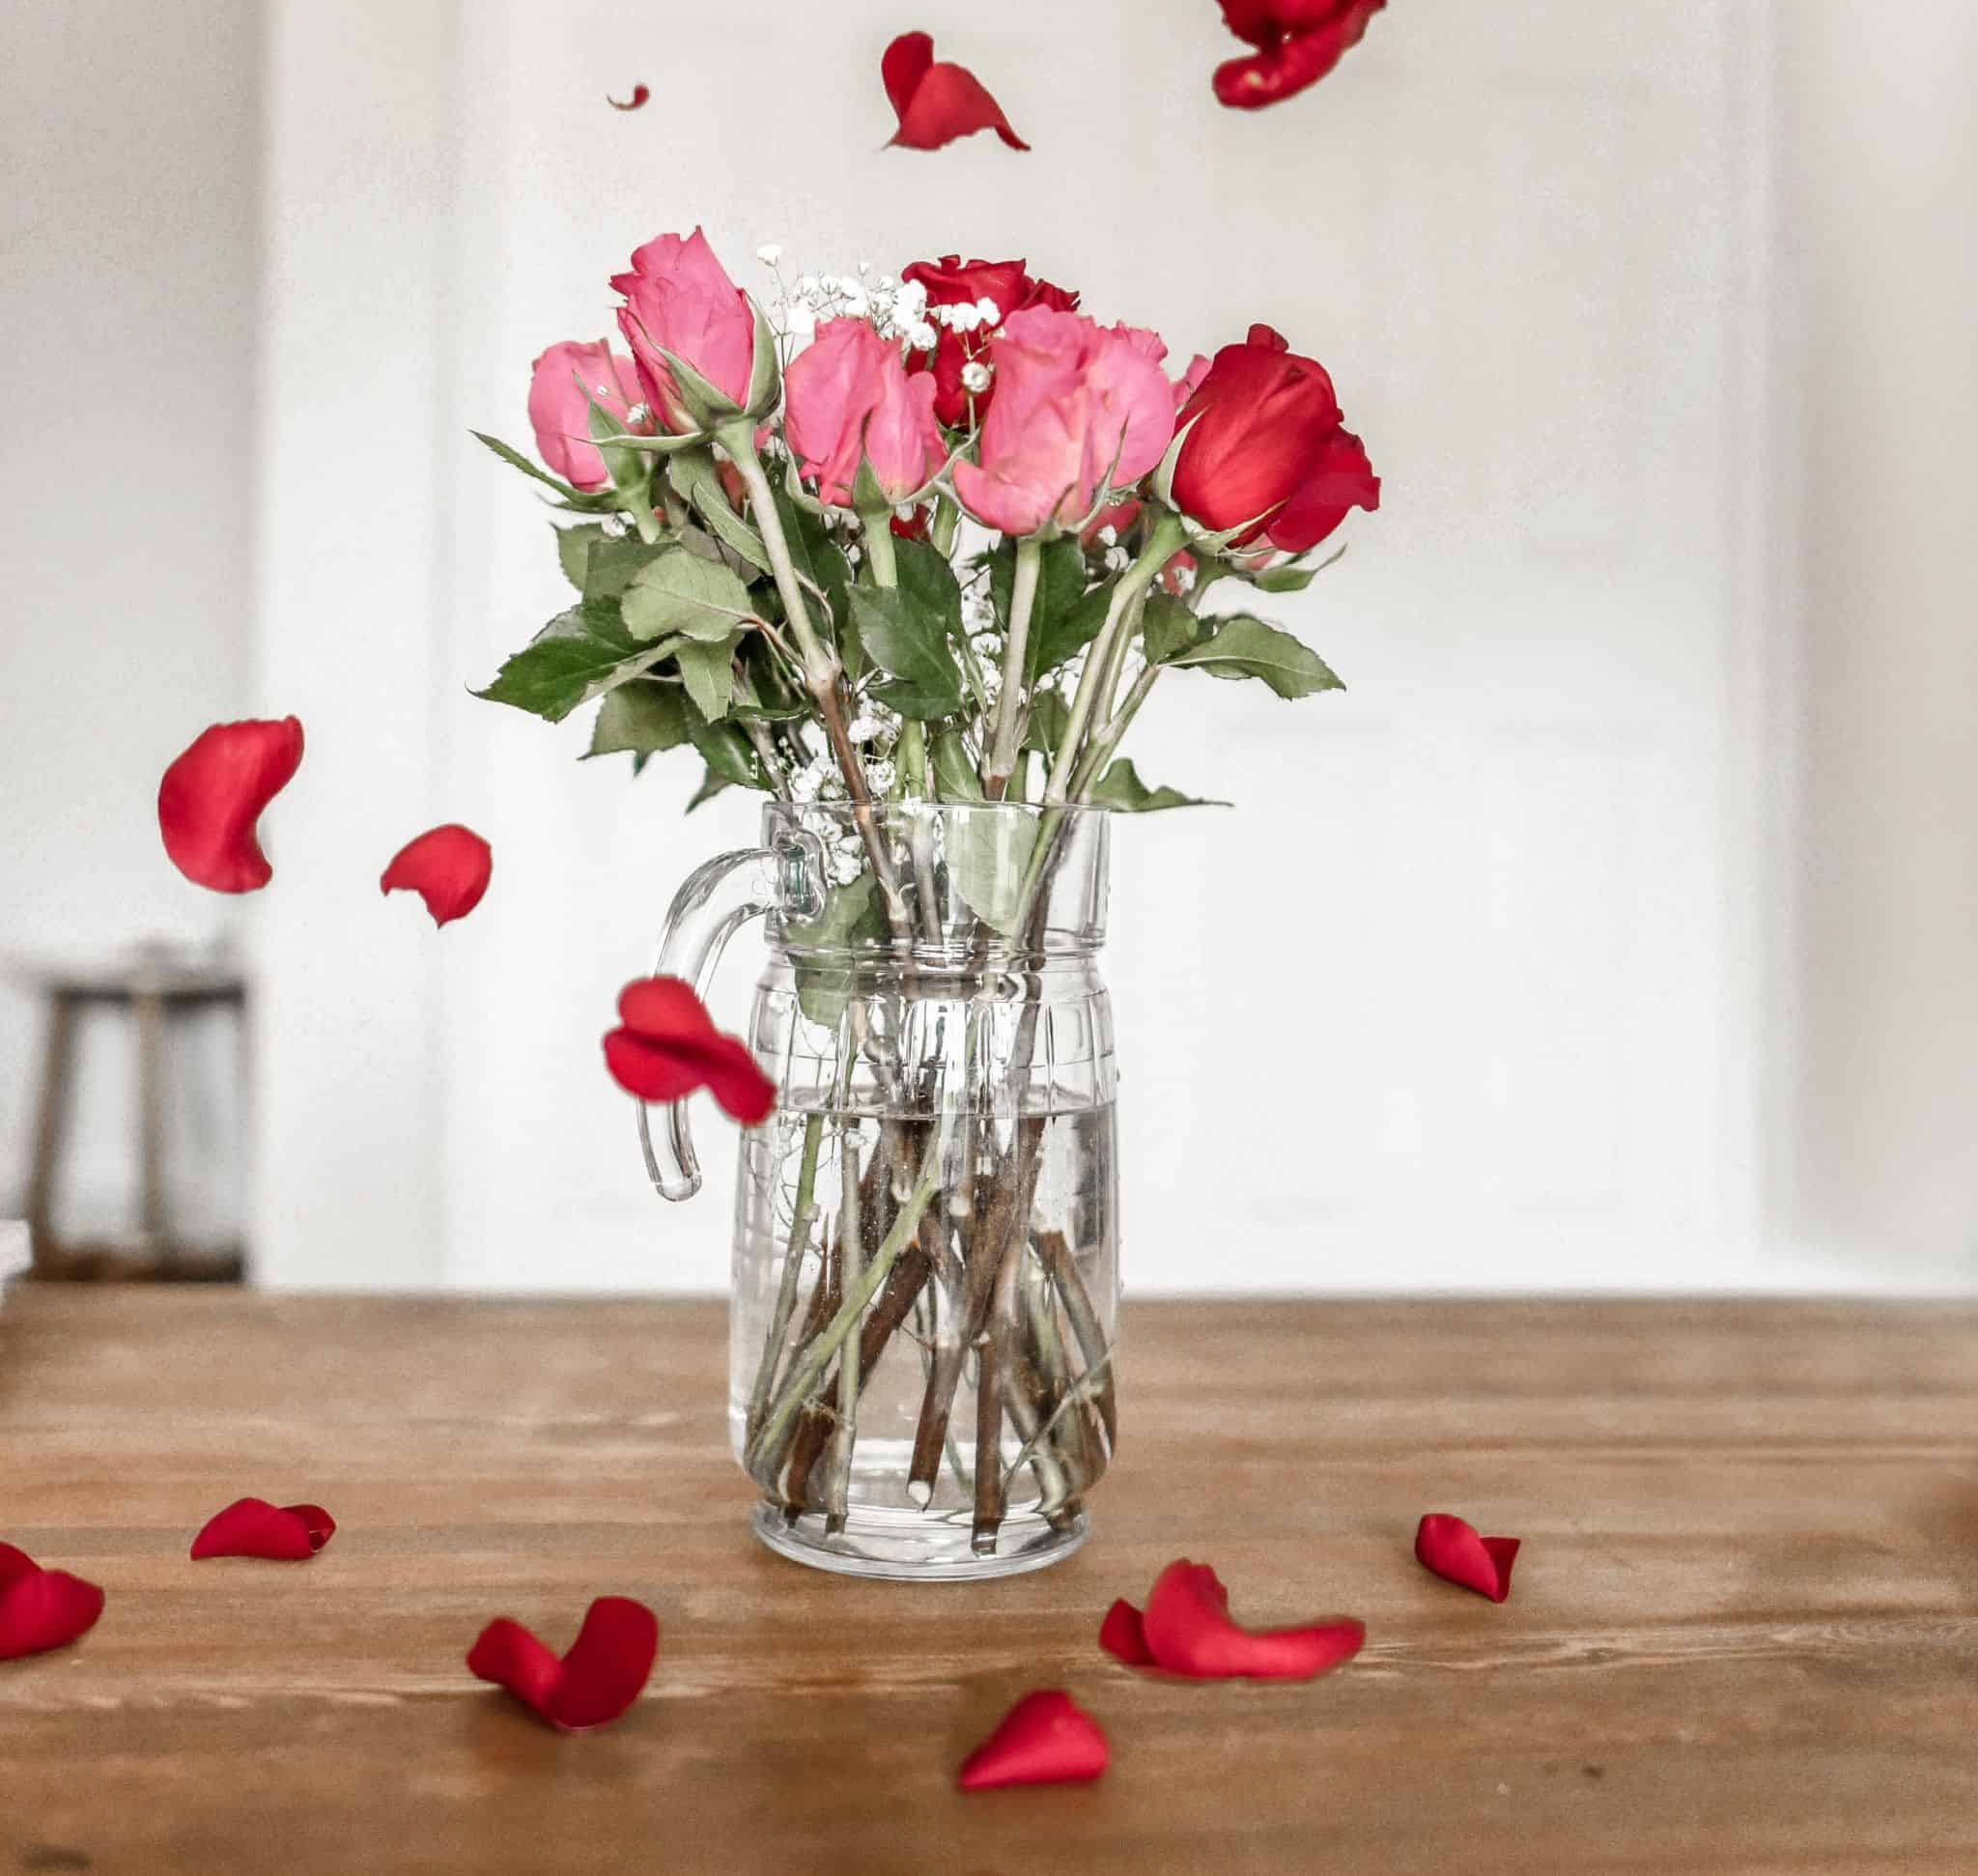 valentine's day ideas for college students - roses and flowers